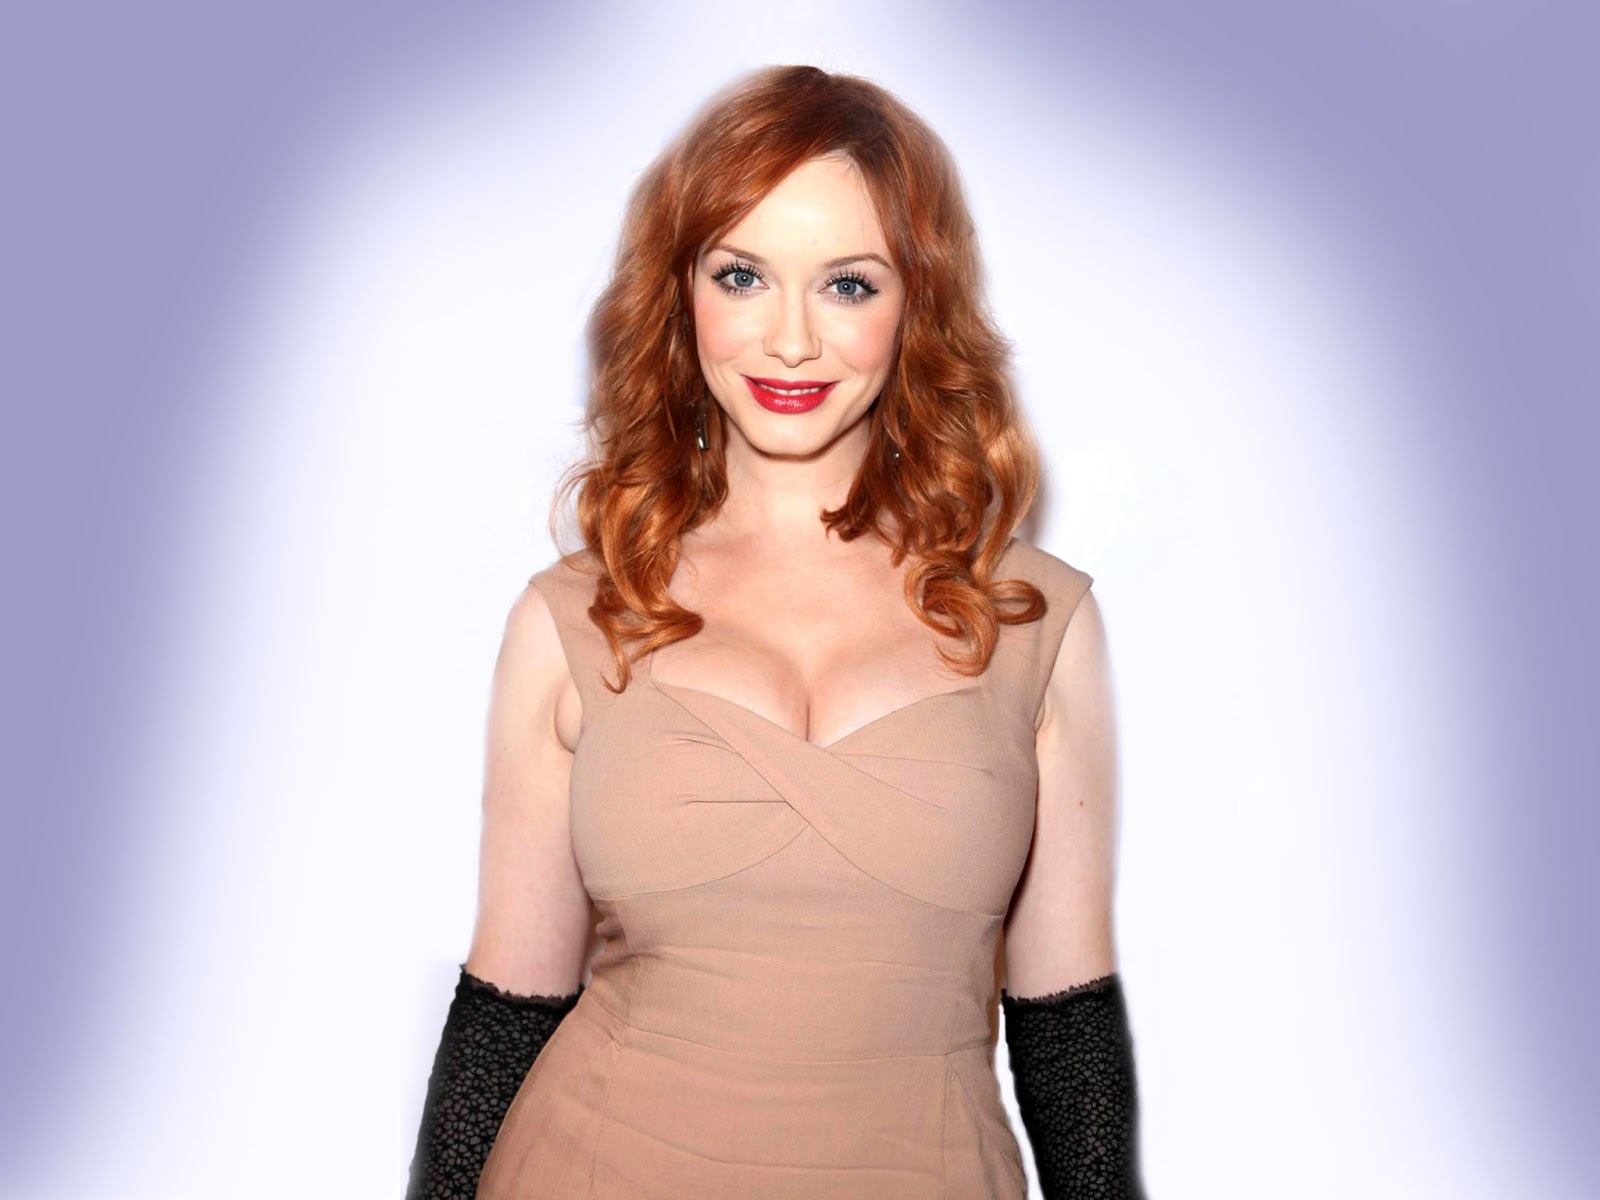 christina hendricks hd wallpaper 2013 christina hendricks hd wallpaper 1600x1200